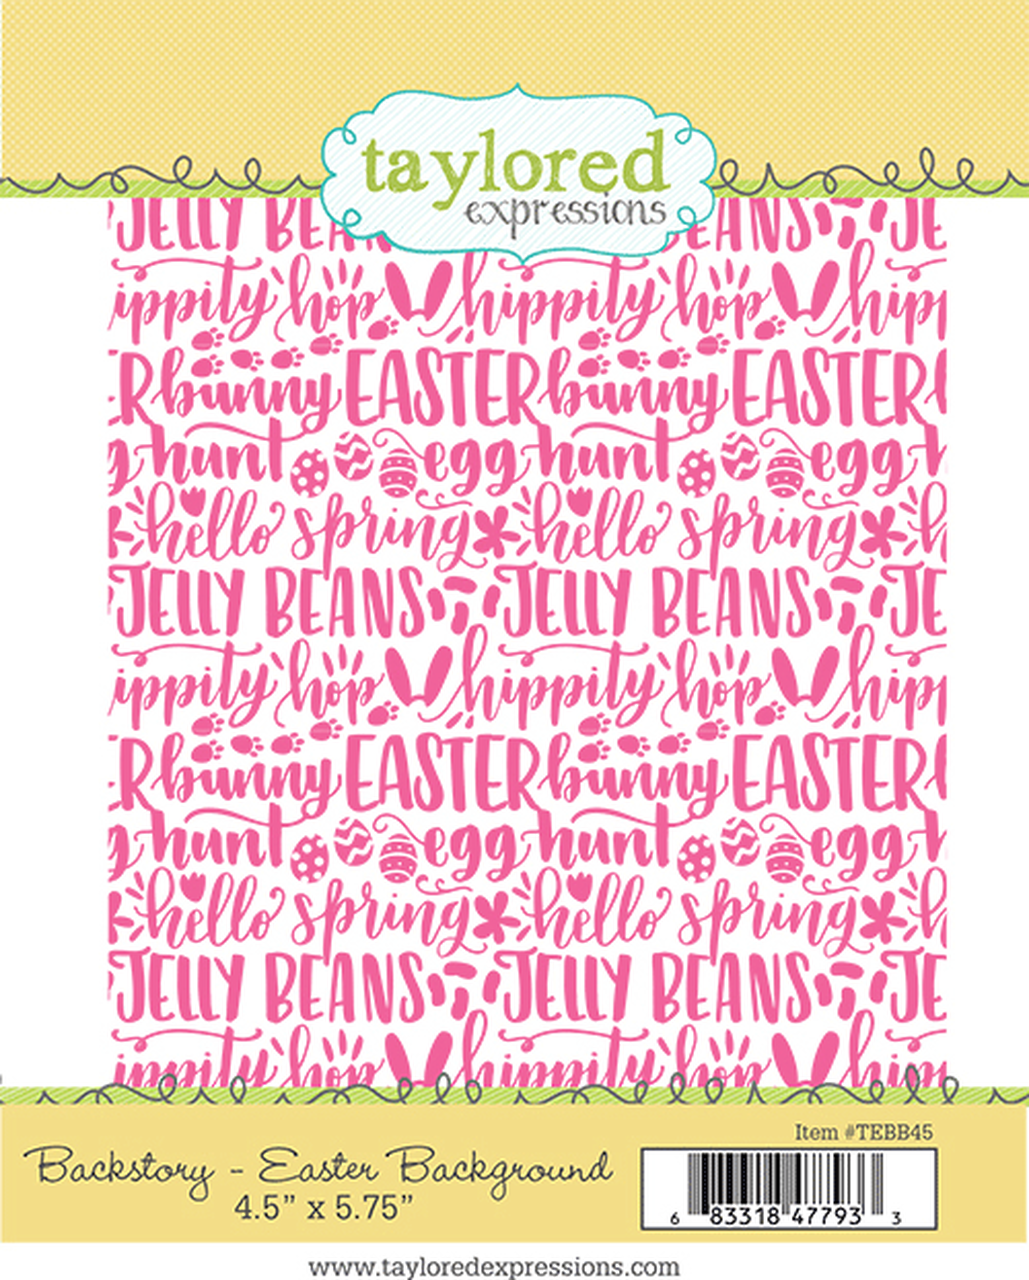 Taylored Expressions - Backstory: Easter Background Stamp